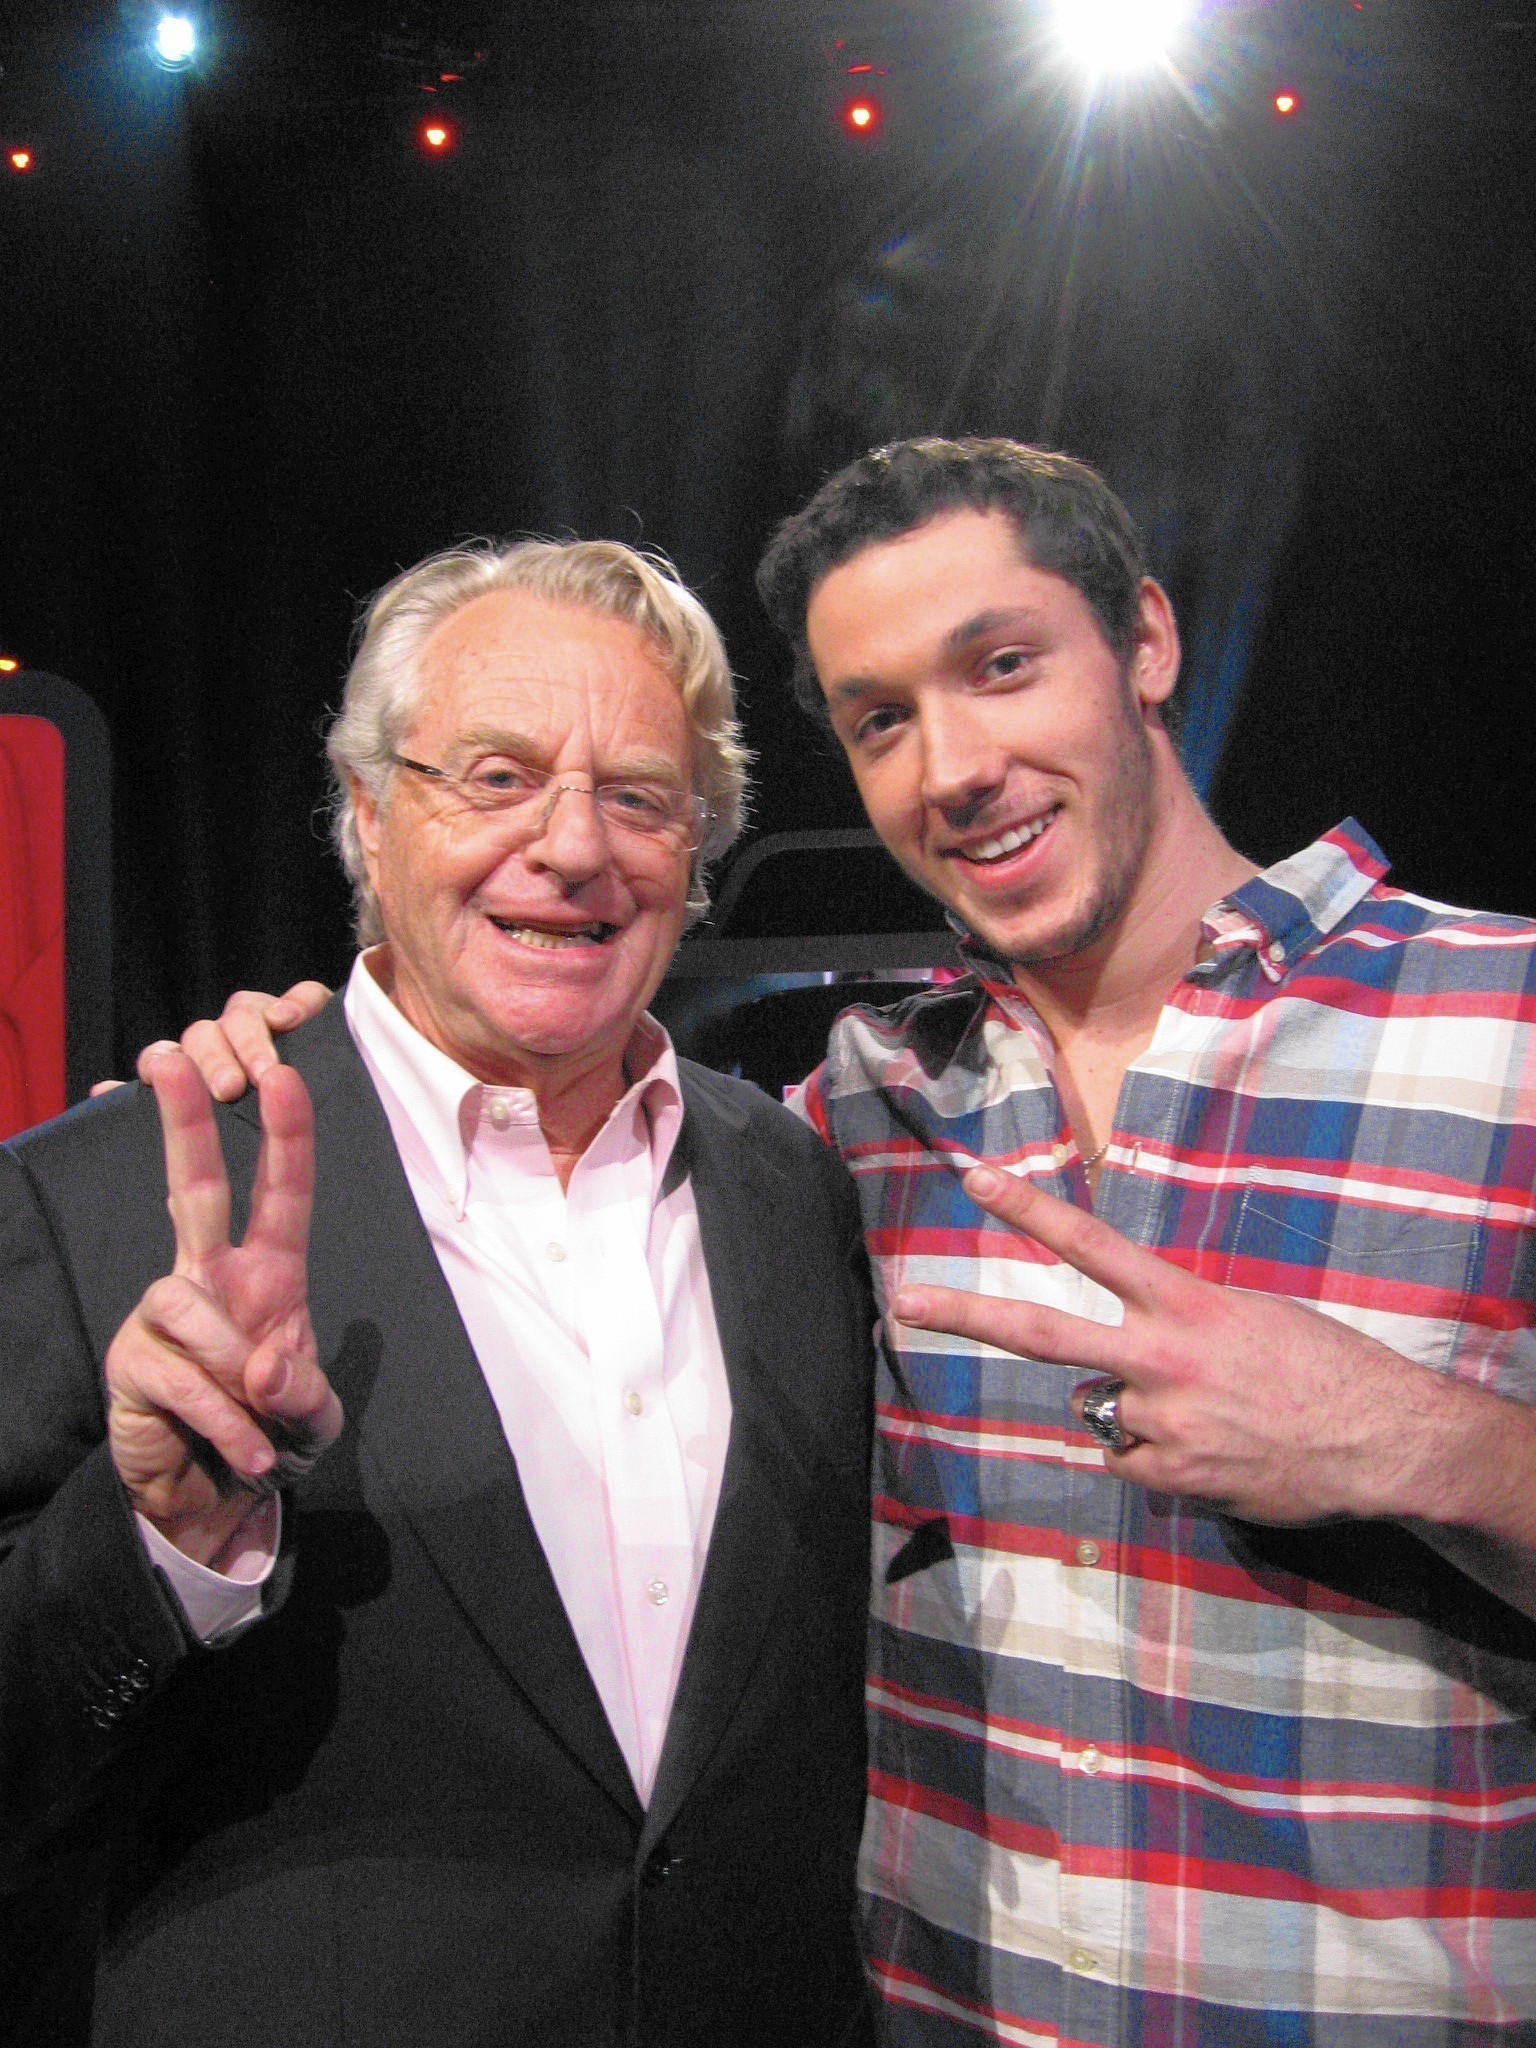 springer singles & personals Jerry springer dating show 'baggage' arriving on channel 4 maury, the jerry springer show, the steve wilkos show all renewed jerry springer to host new show 'tabloid'.